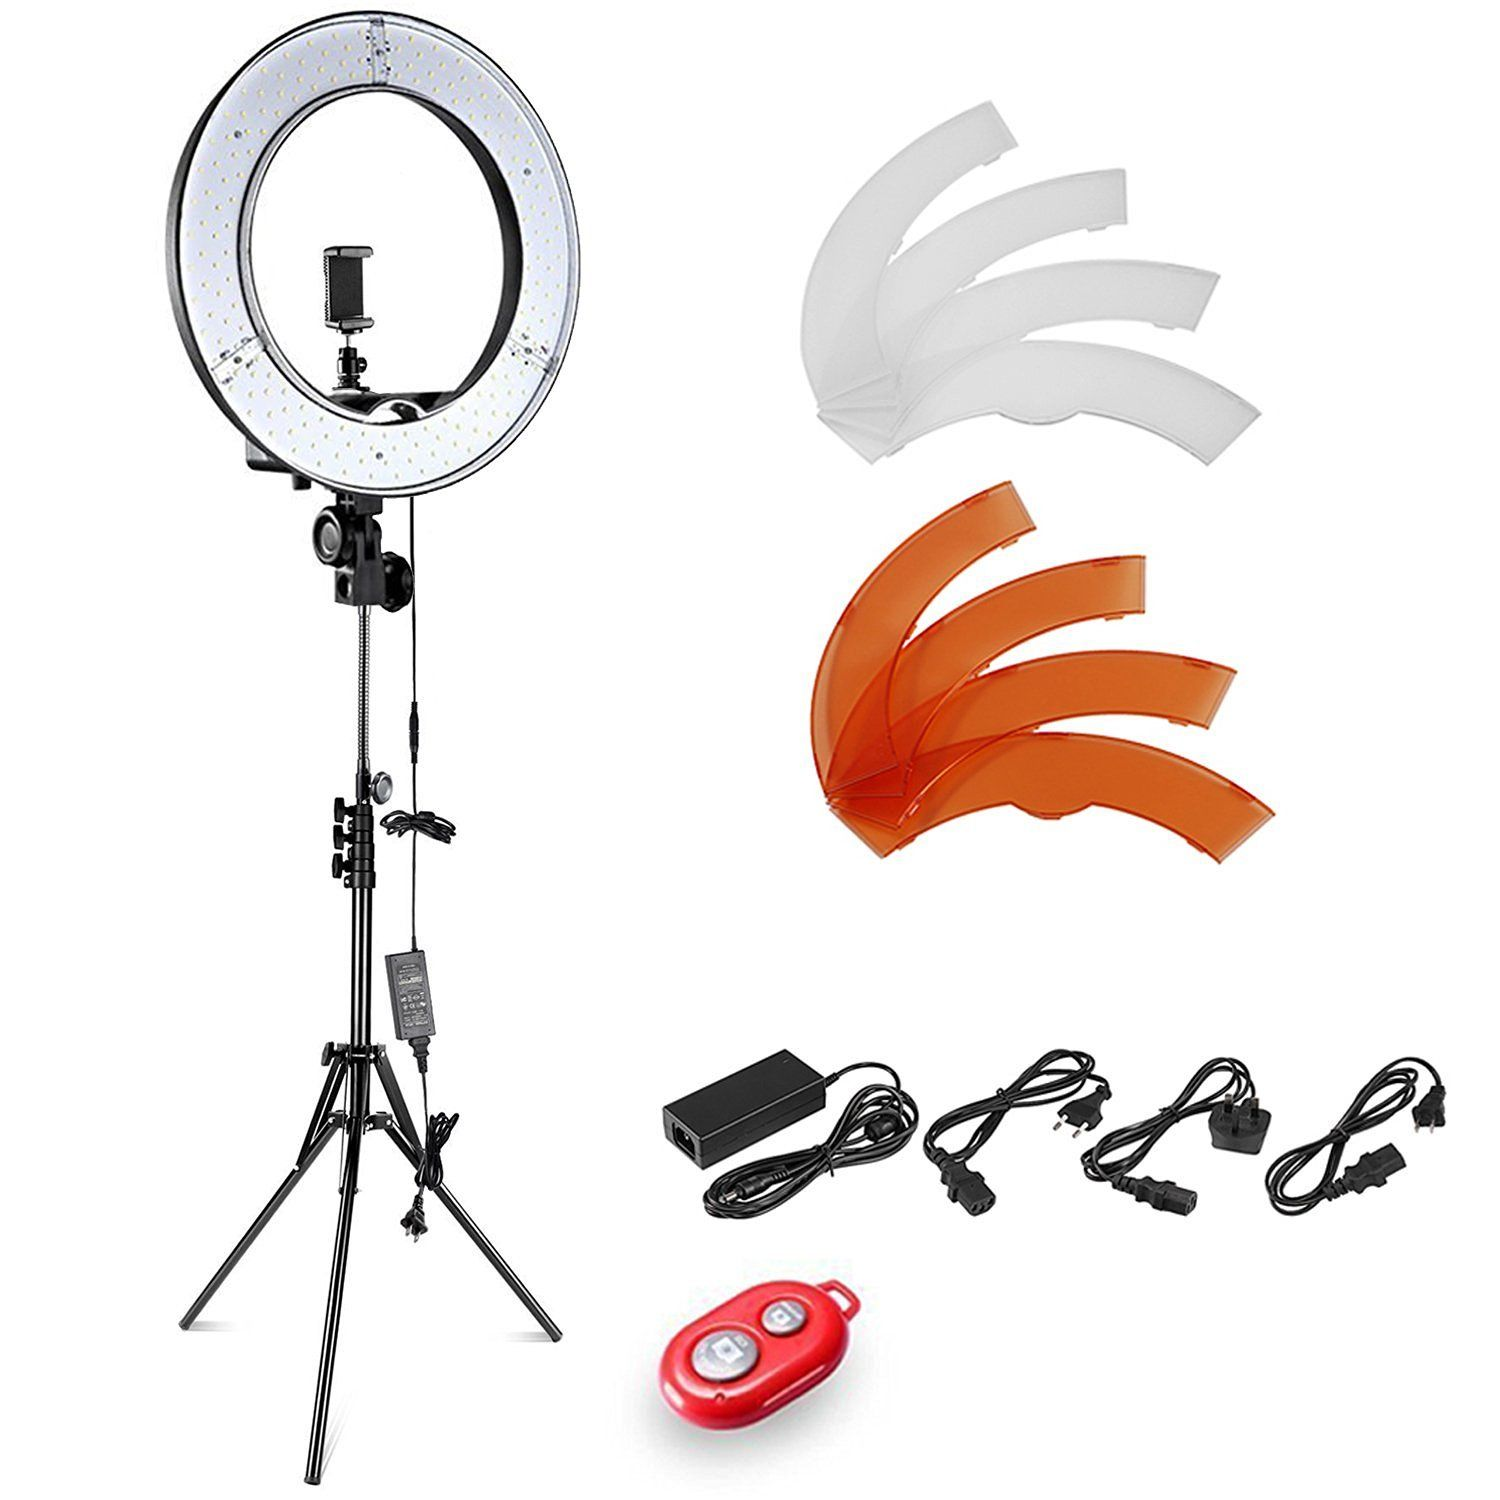 Neewer 14 Quot 36cm Outer Led Ring Light Kit With Light Stand Soft Tube 2 Color Filter Hot Shoe Adapter Bluetooth Led Ring Light Selfie Light Camera Photo